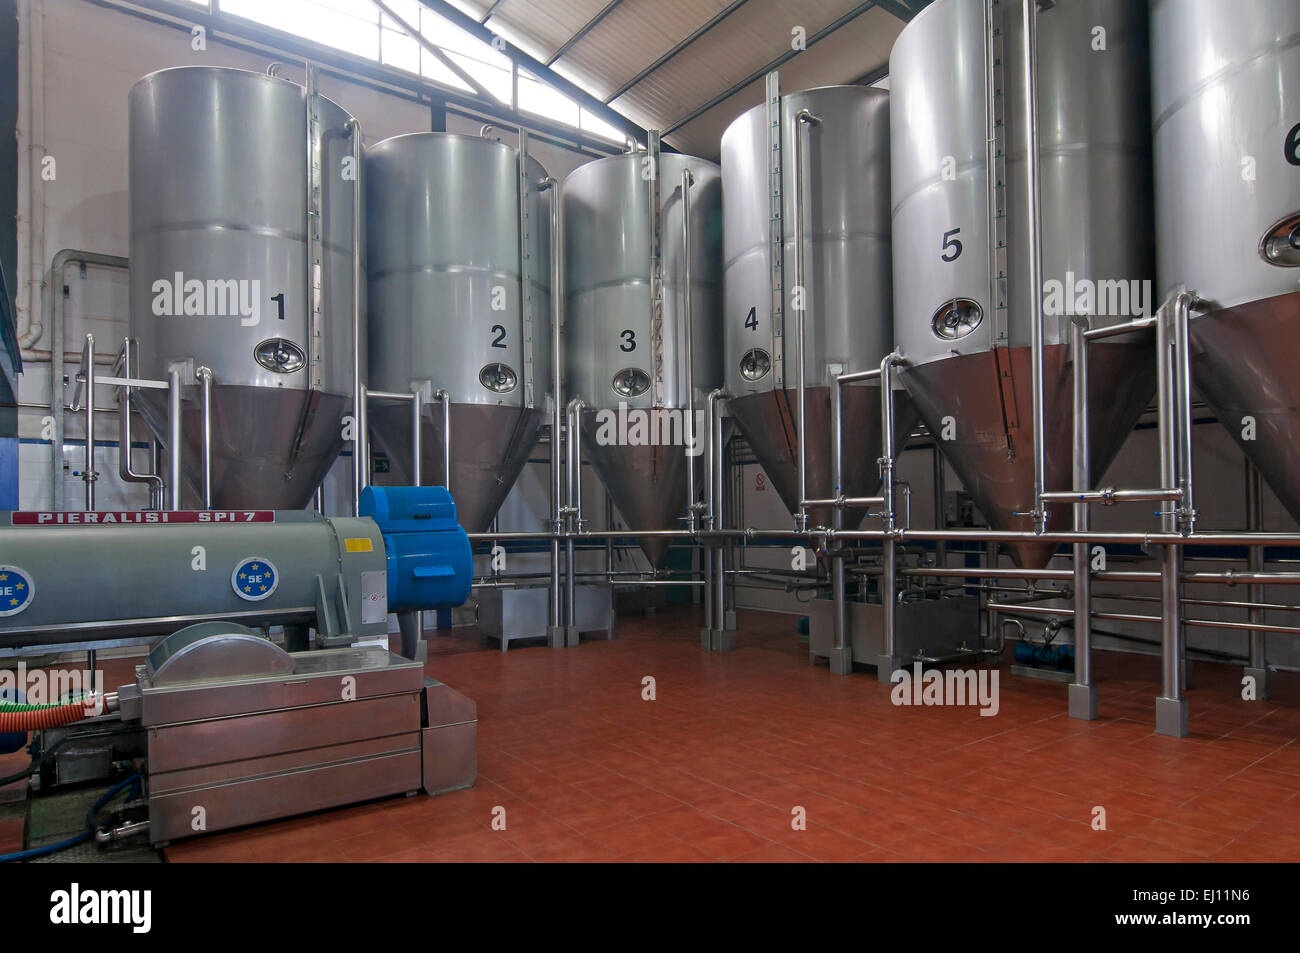 Oil mill factory Asuncion and San Jose, Rus, Jaen province, Region of Andalusia, Spain, Europe - Stock Image